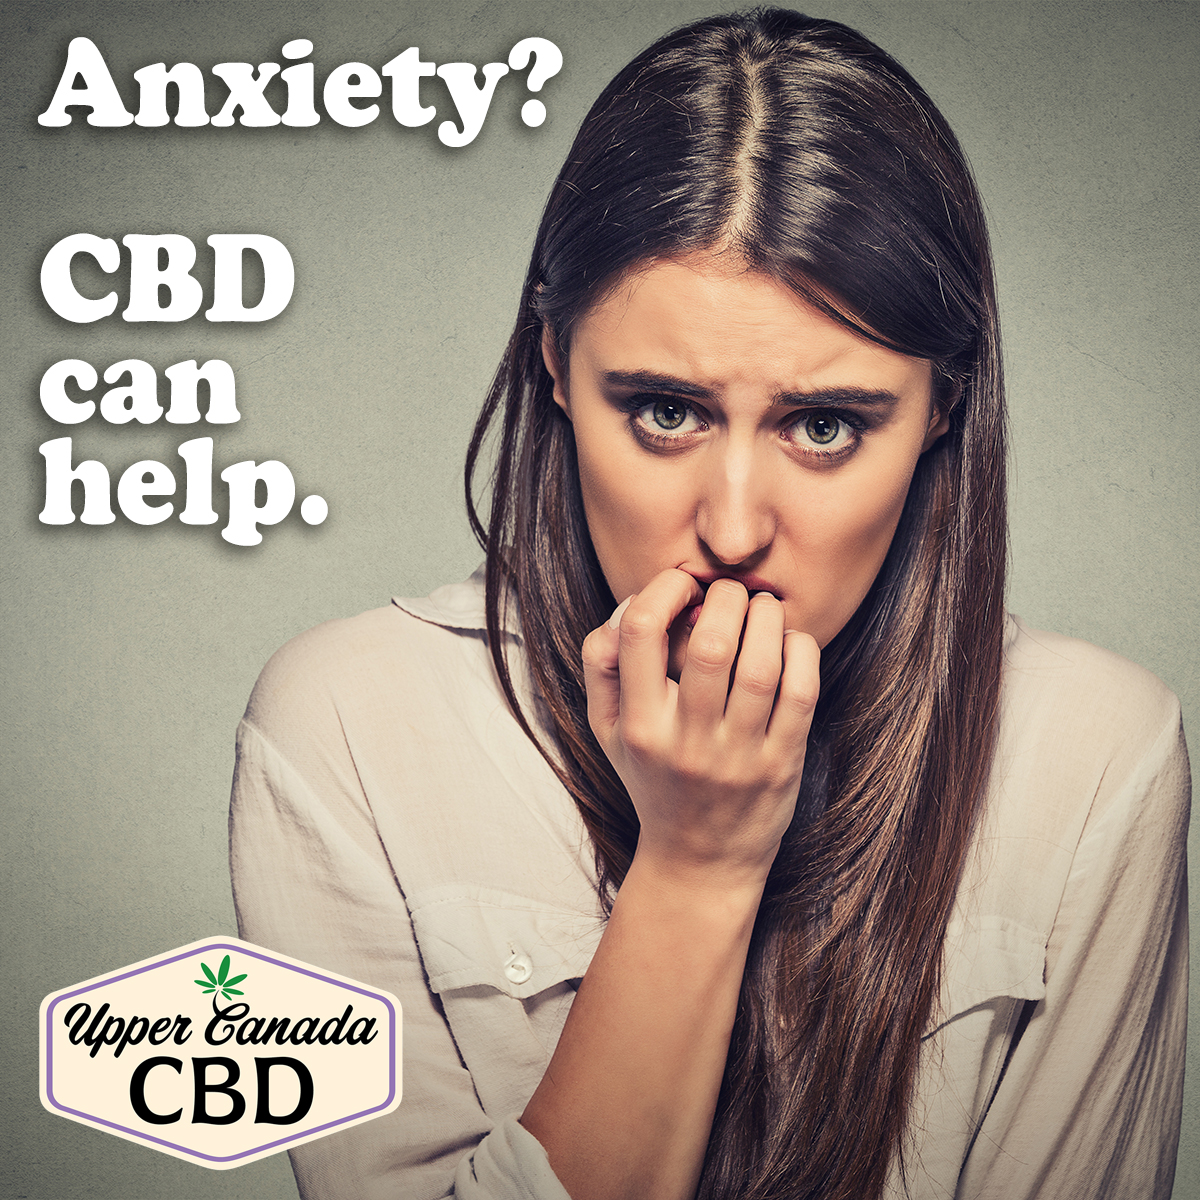 If you or someone you know is suffering with anxiety, trying one of our CBD oil tinctures could help in alleviating your symptoms. Got questions? Just ask! Buy online anytime http://www.uppercanadacbd.com . . #CBD #CBDAwareness #CBDBenefits #UpperCanadaCBD #CBDoilCanada #CBDForAnxietypic.twitter.com/G7Jr8wI7te